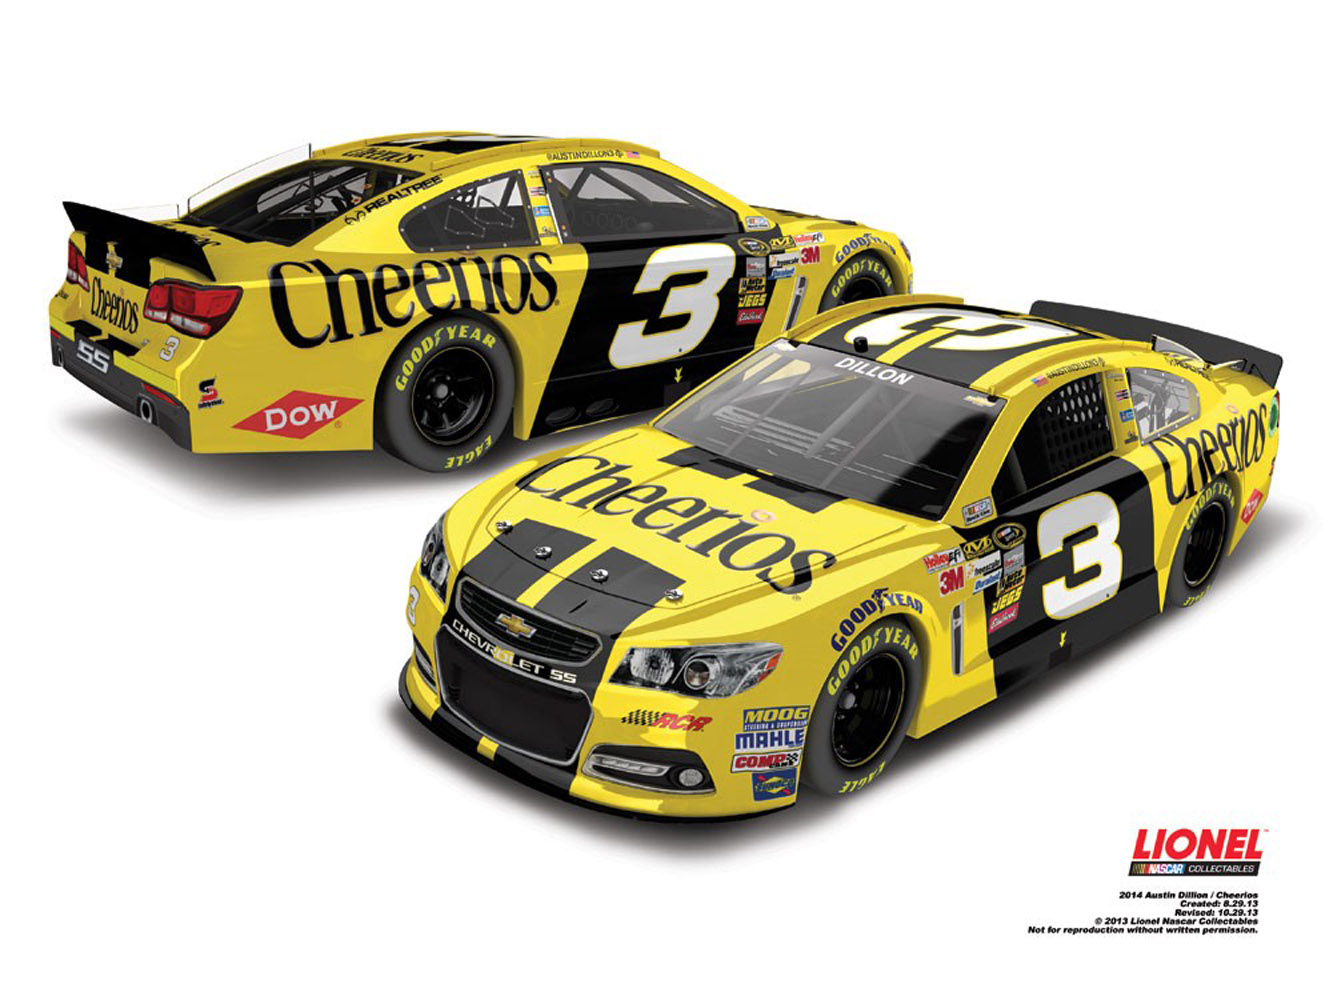 2014 Austin Dillon #3 Cheerios Sprint Cup 1:24 Diecast Car